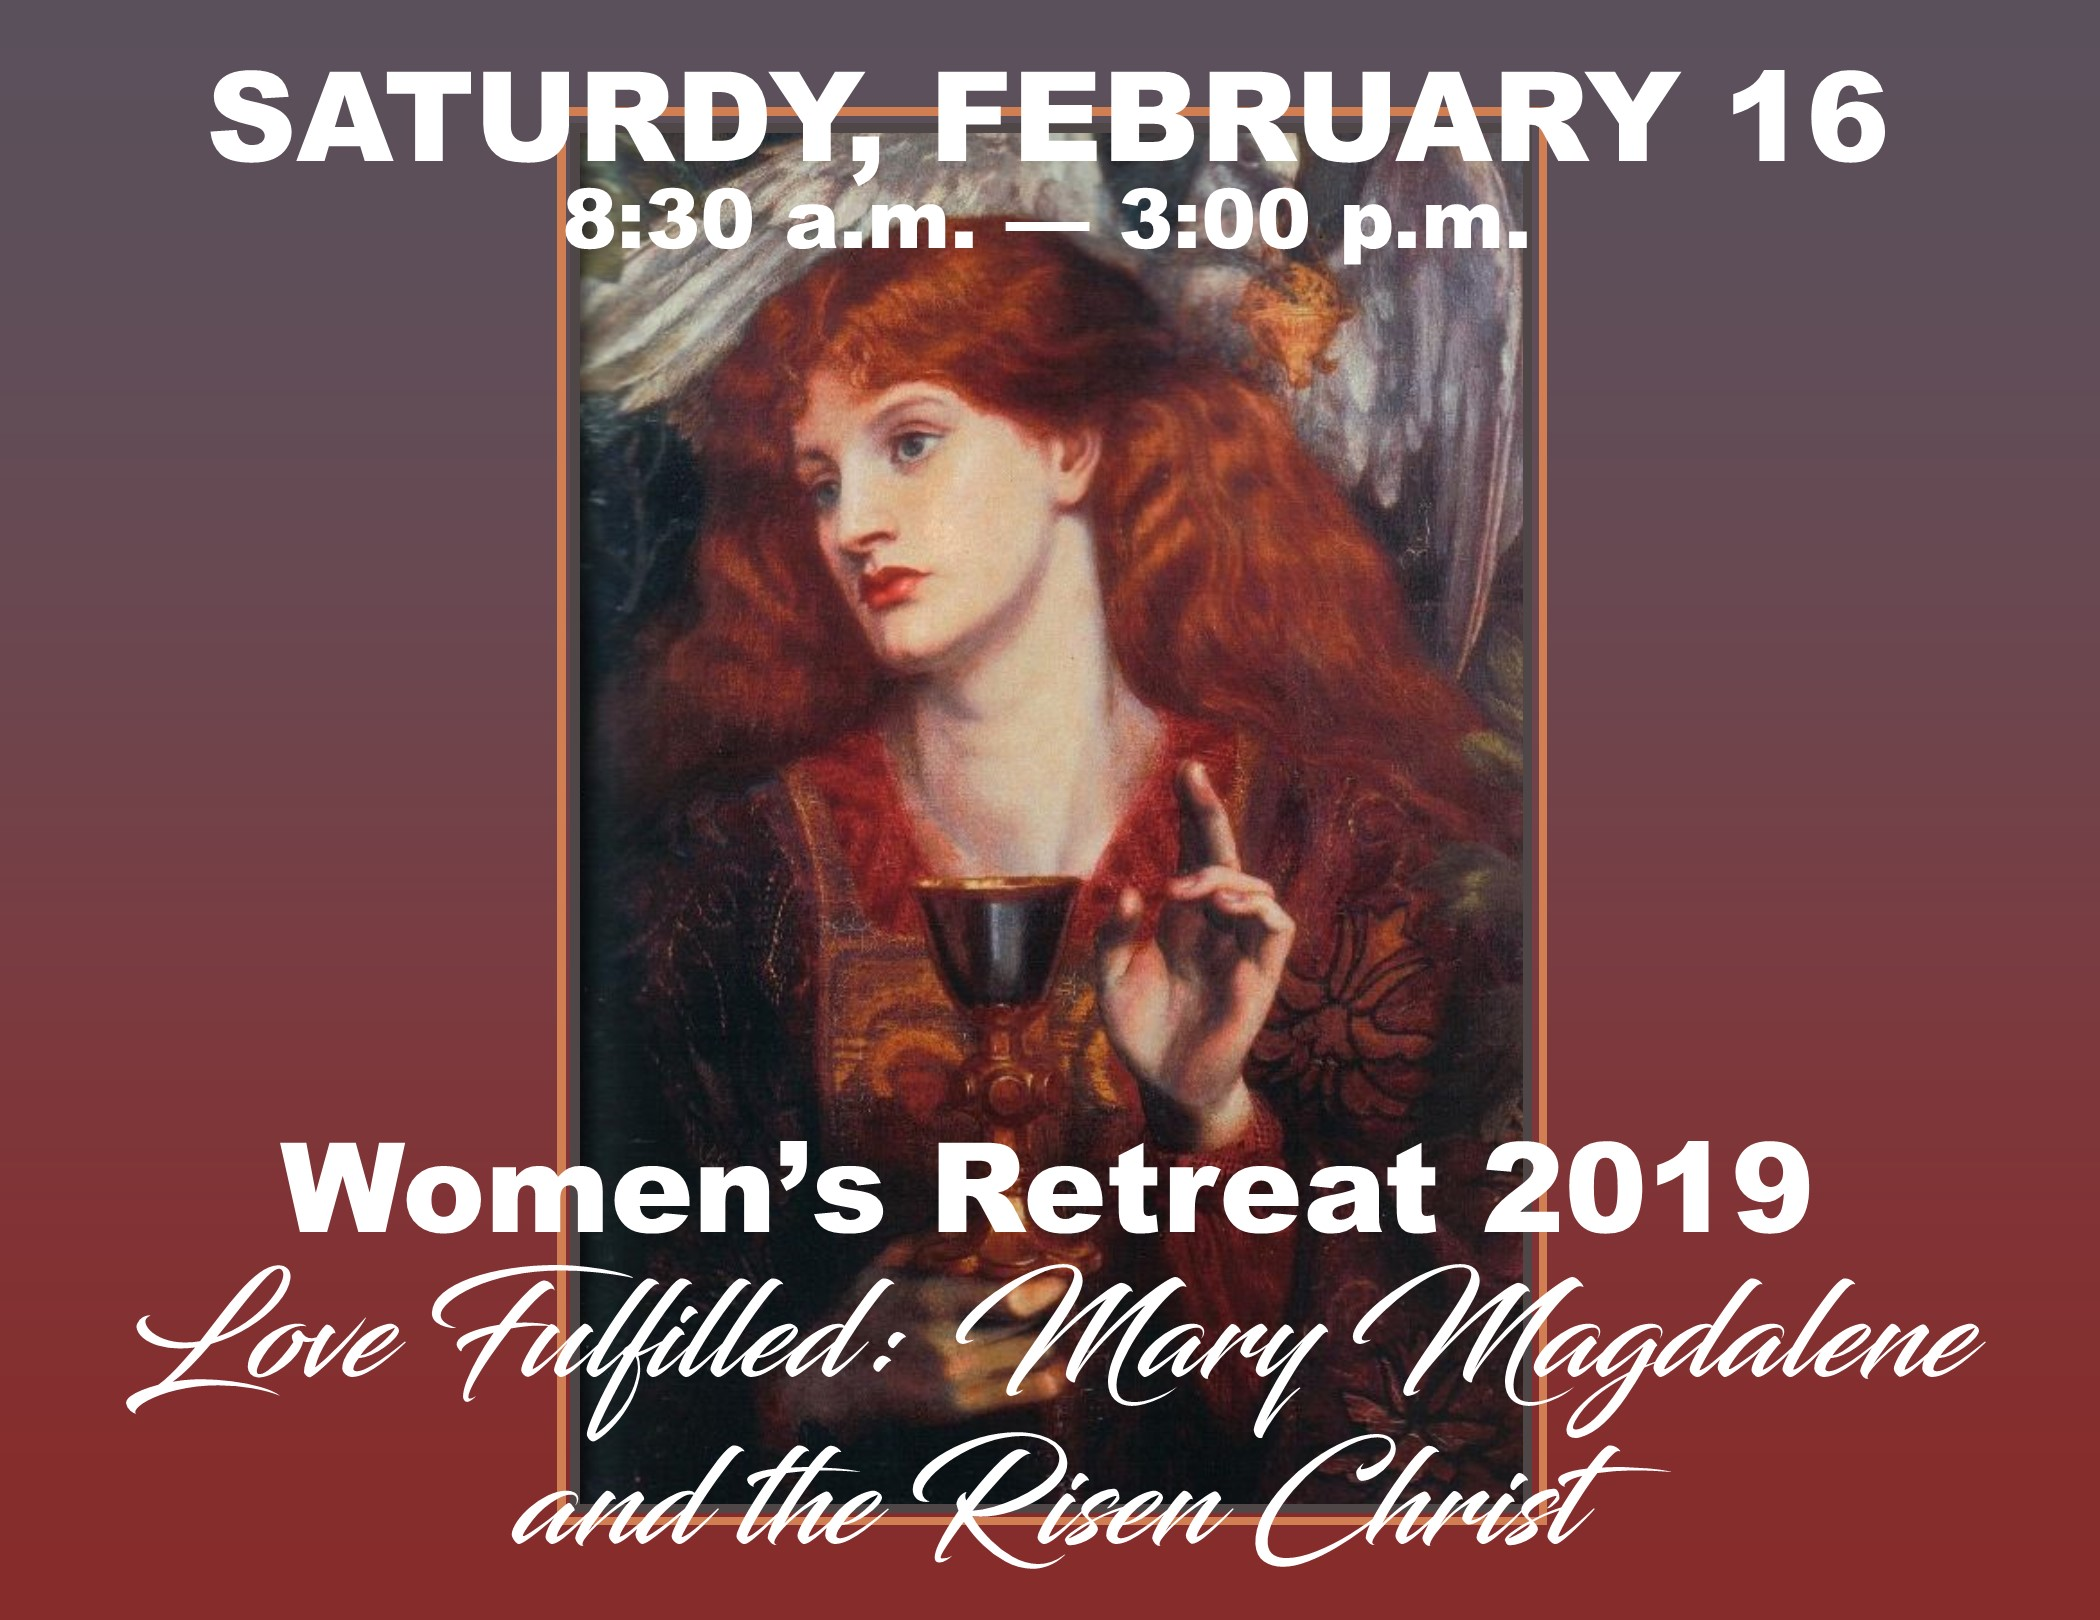 Retreat led by Fr. Steve McMichael at Risen Savior. Cost: $35/person.